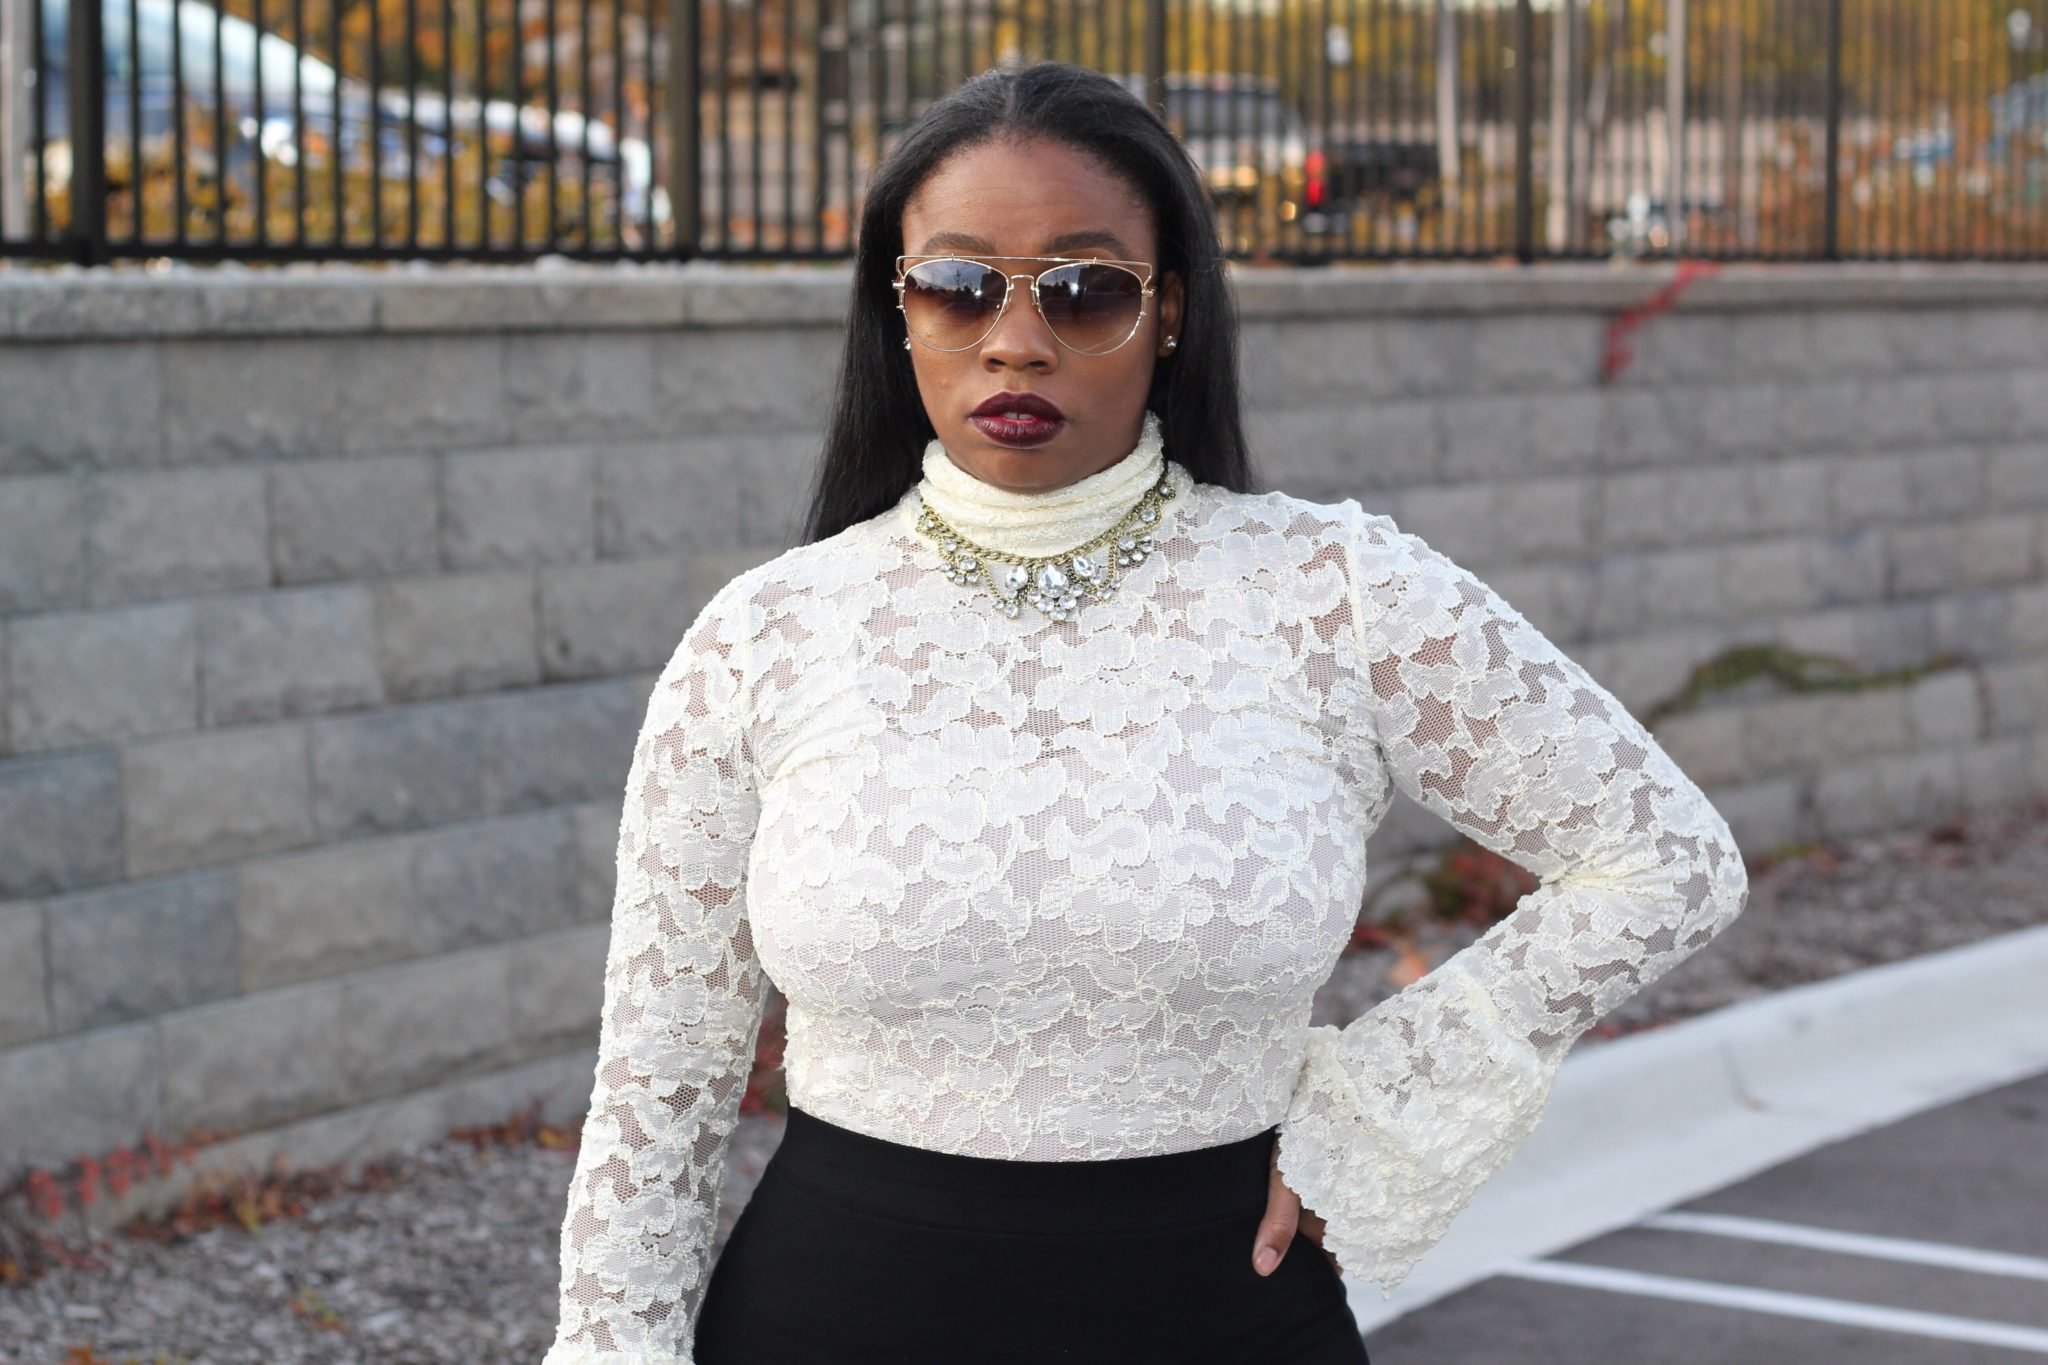 img_7734-1 Laced With StyleAmerican Apparel eBay Fall 2016 Fashion Fashion Nova Maybelline OOTD